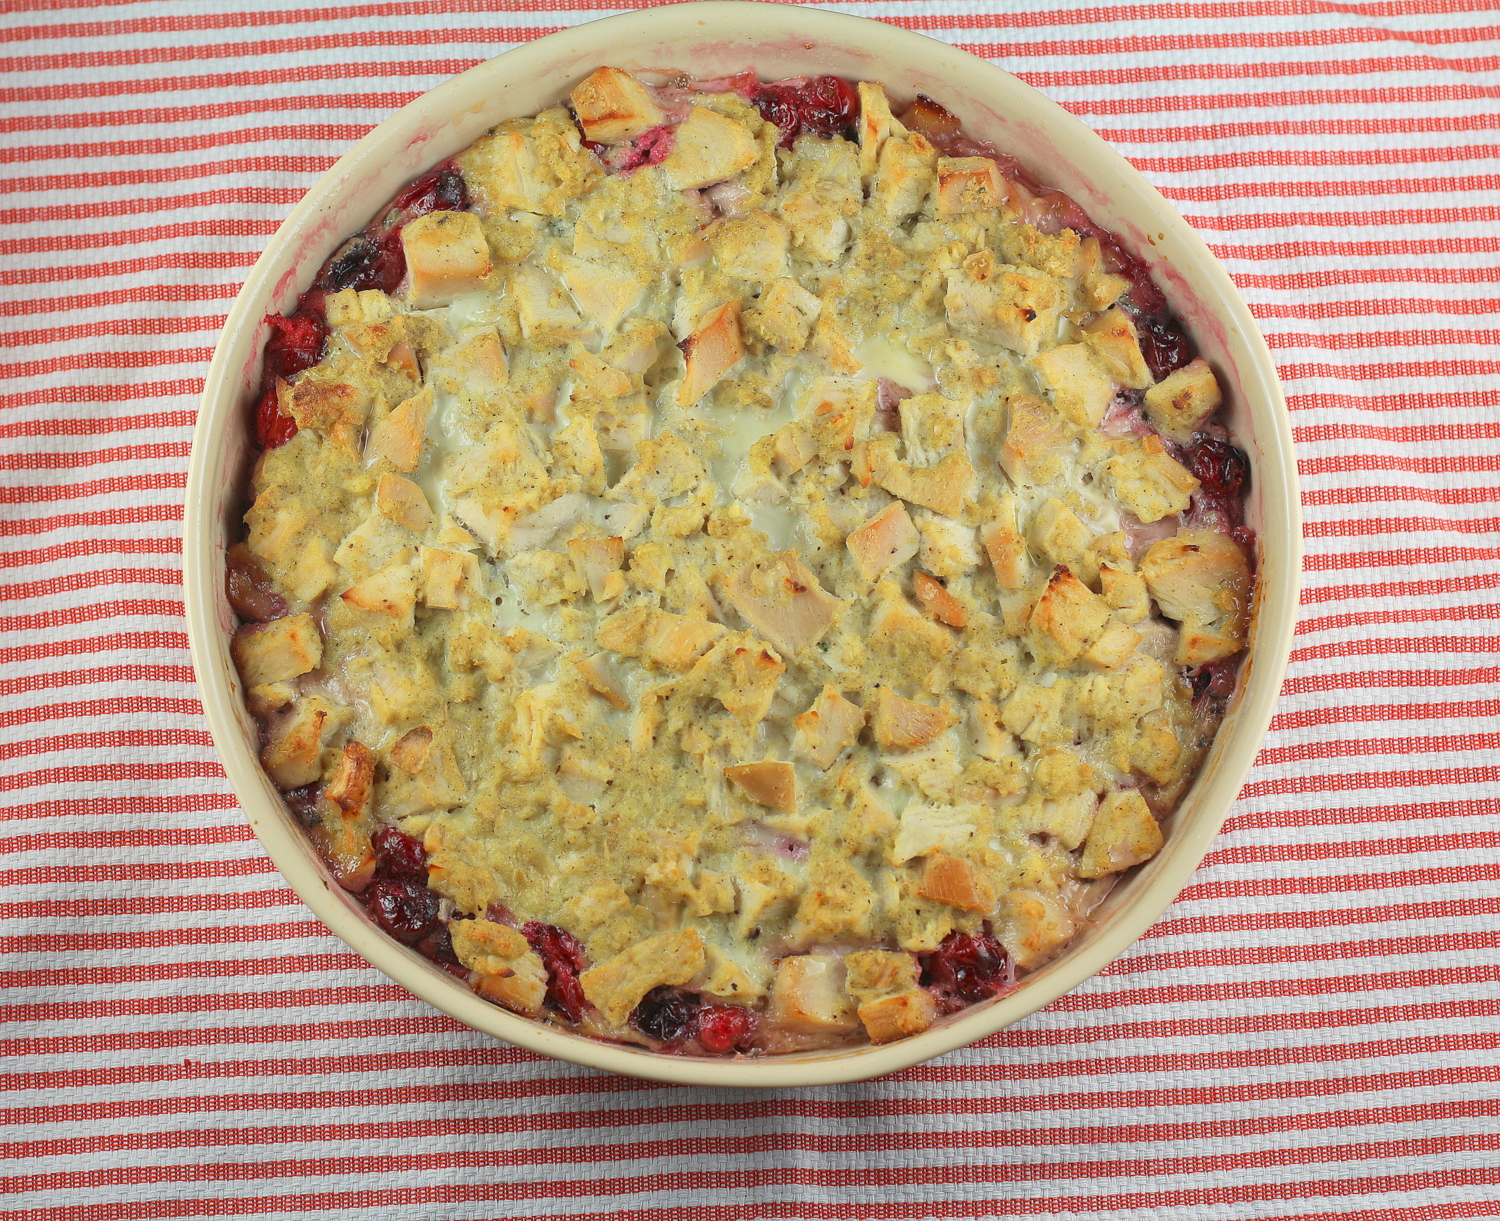 Cranberry Turkey Casserole